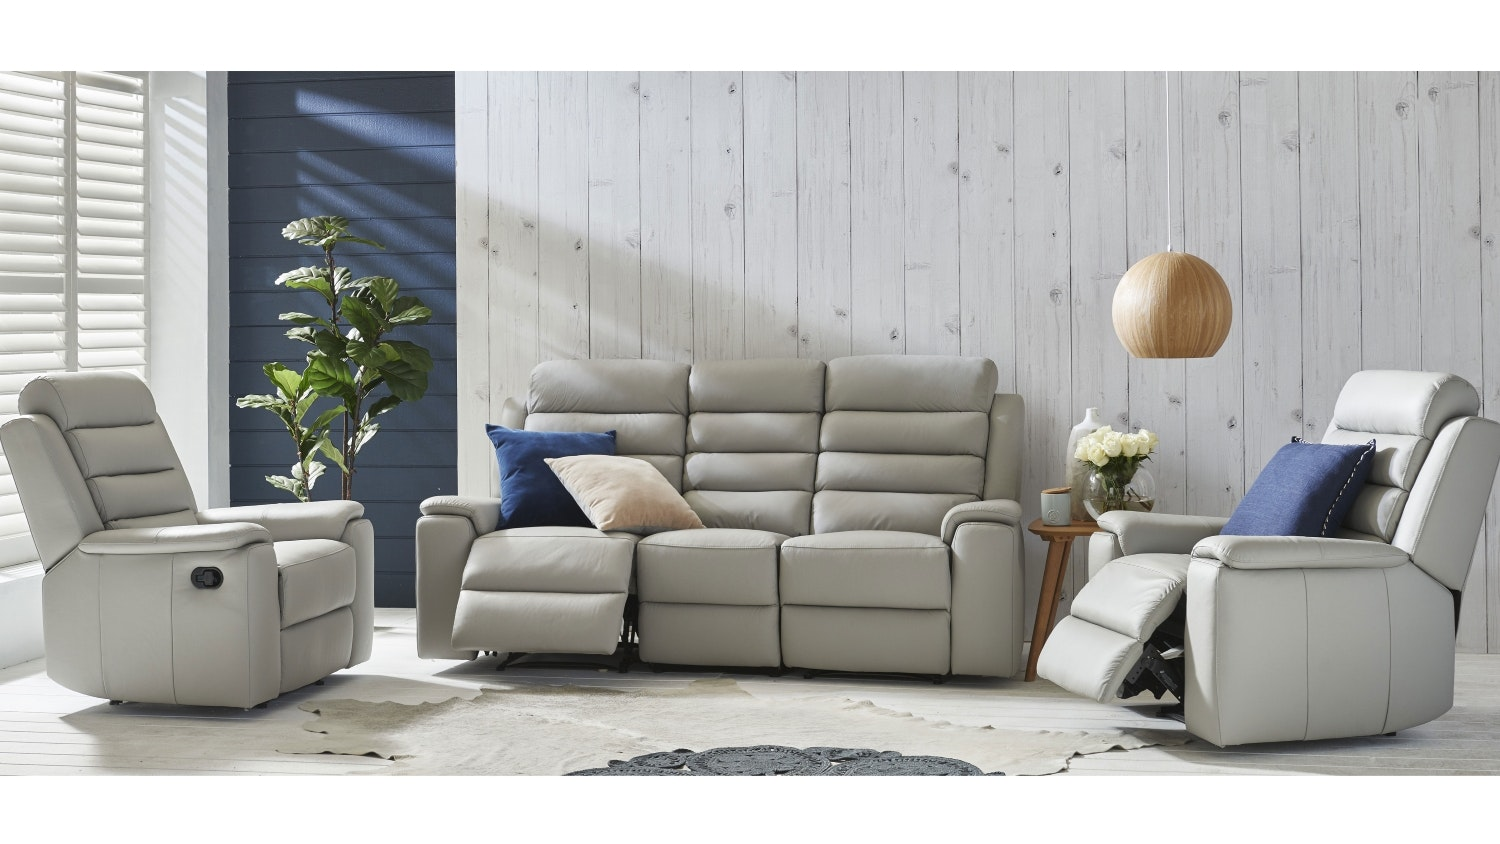 Apolo 3 Piece Leather Recliner Lounge Suite